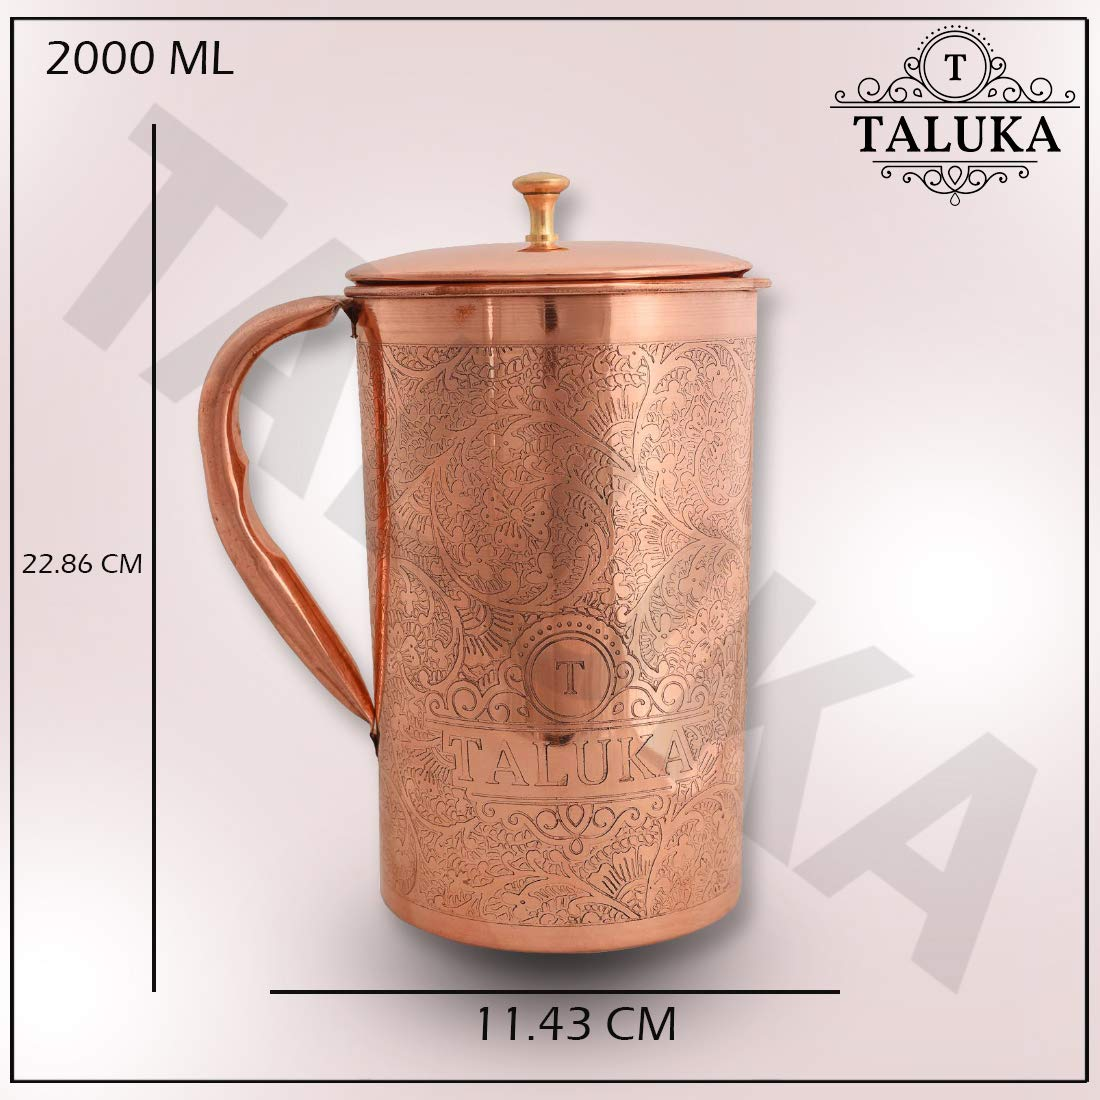 Taluka Pure Copper Embossed Water Jug Pitcher with Brass Knob 2000 ML Water Storage Hotel Home Restaurant (Size: Height 9 Inch x Dia 4.5 Inch)